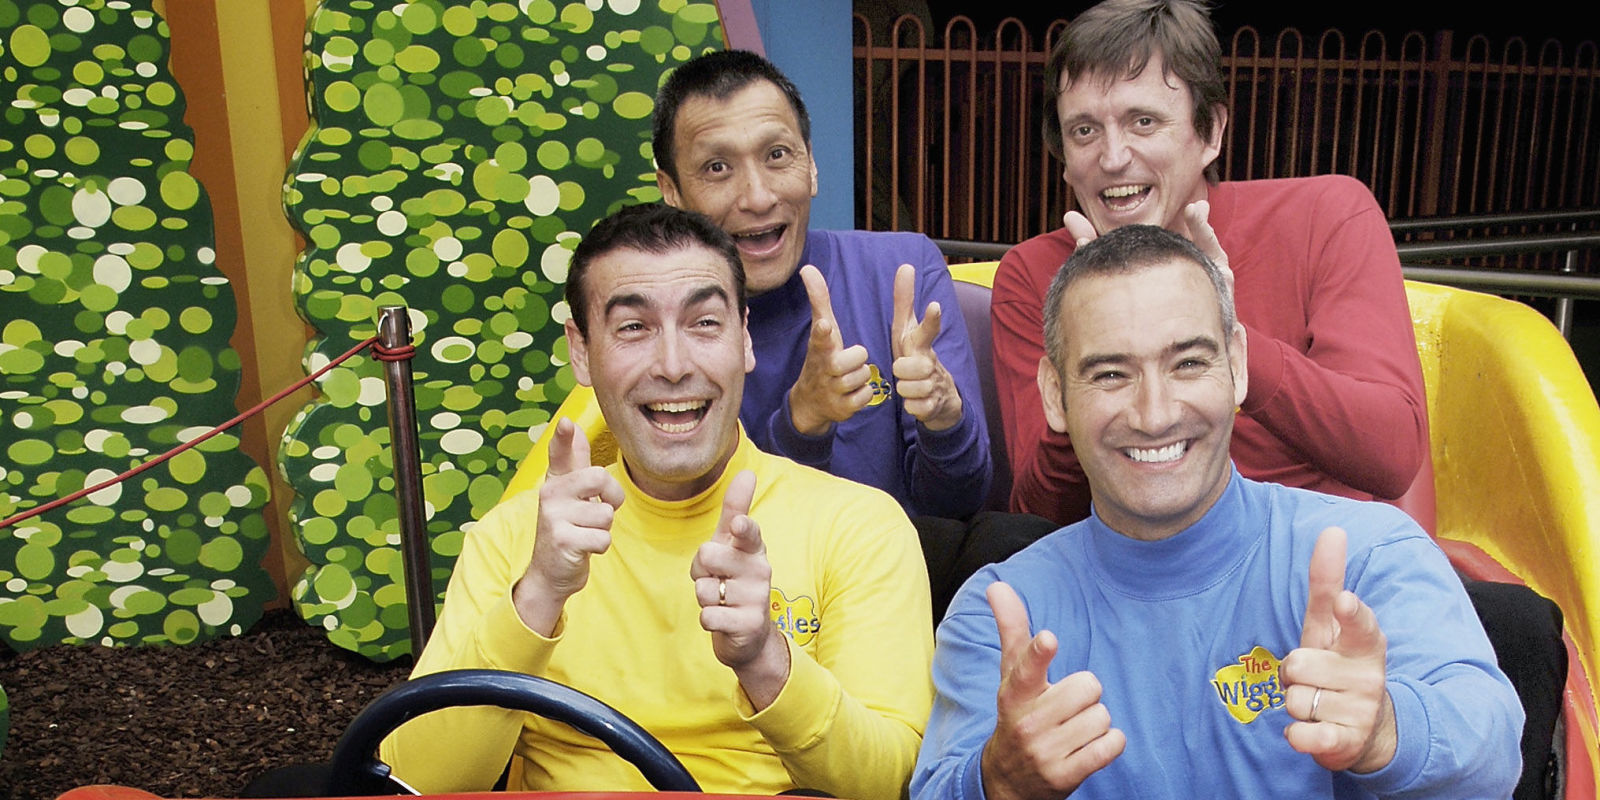 The Original Wiggles Reunite For Adults Wiggles Group